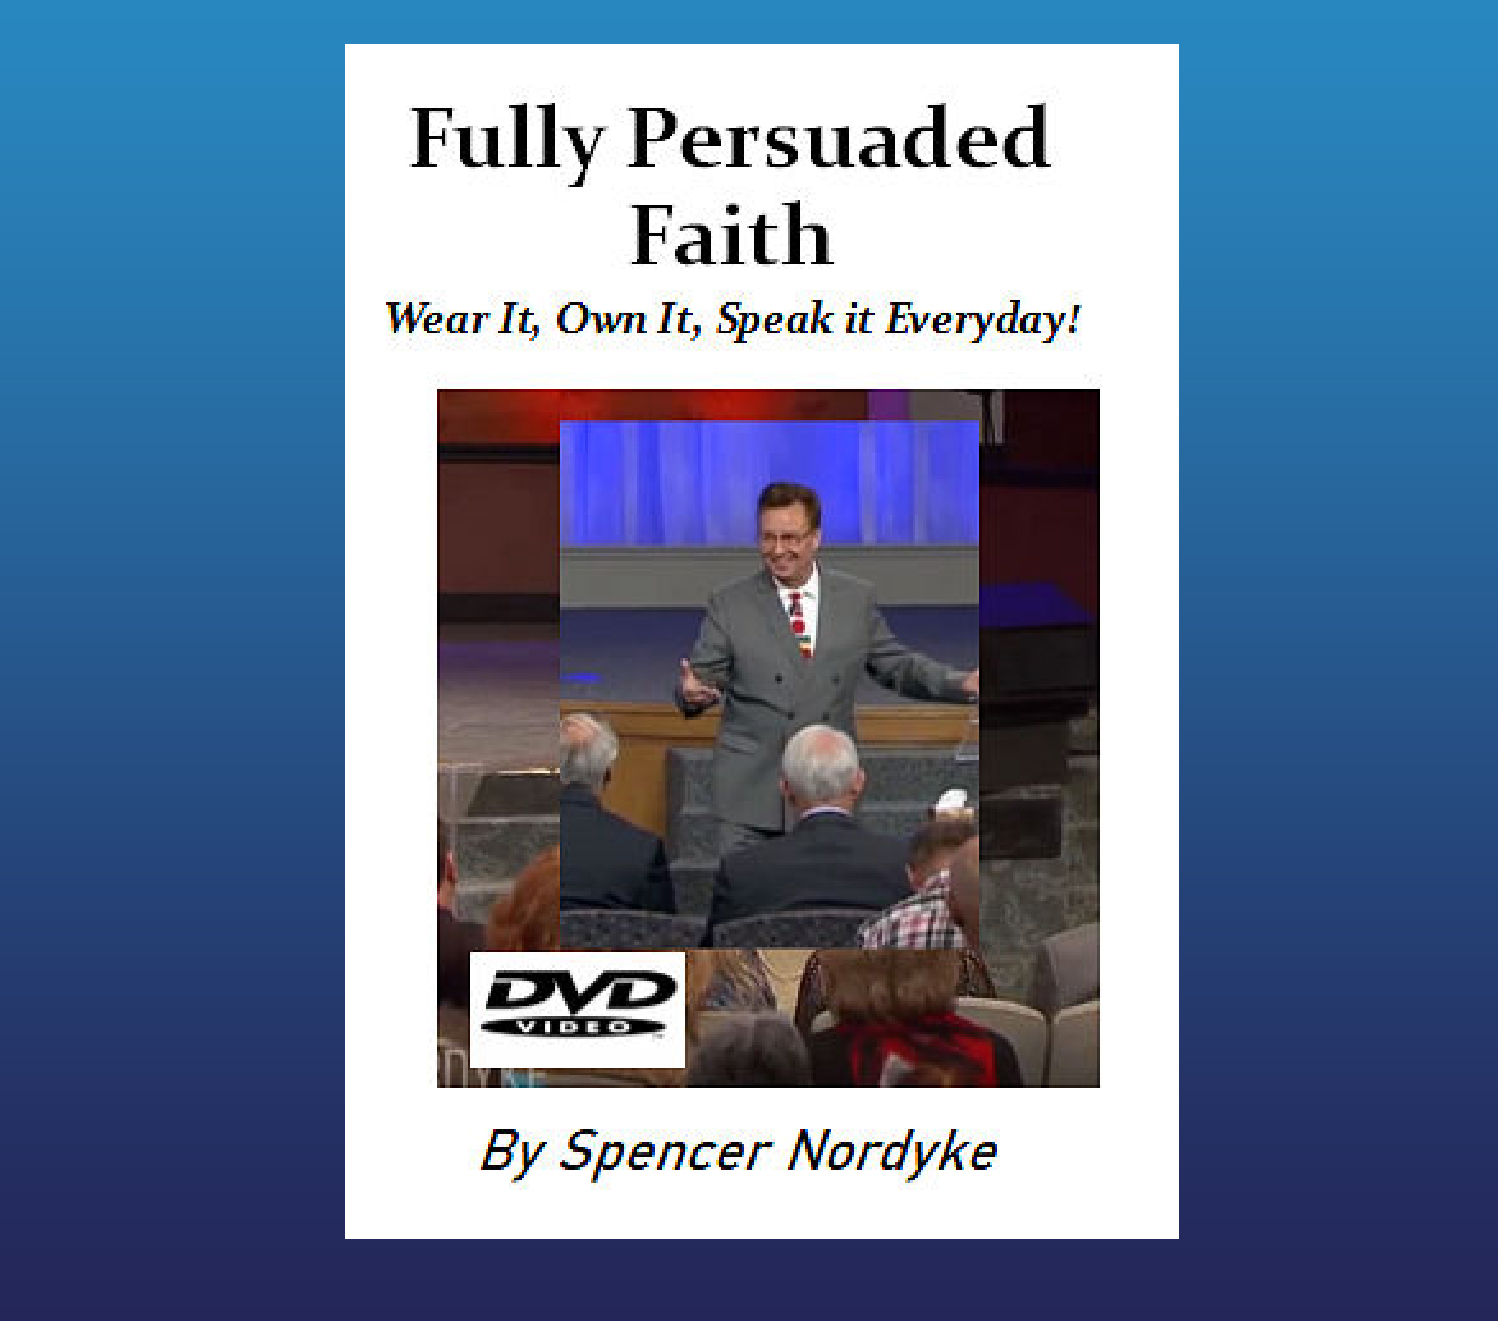 Fully Persuaded Faith DVD By Spencer Nordyke